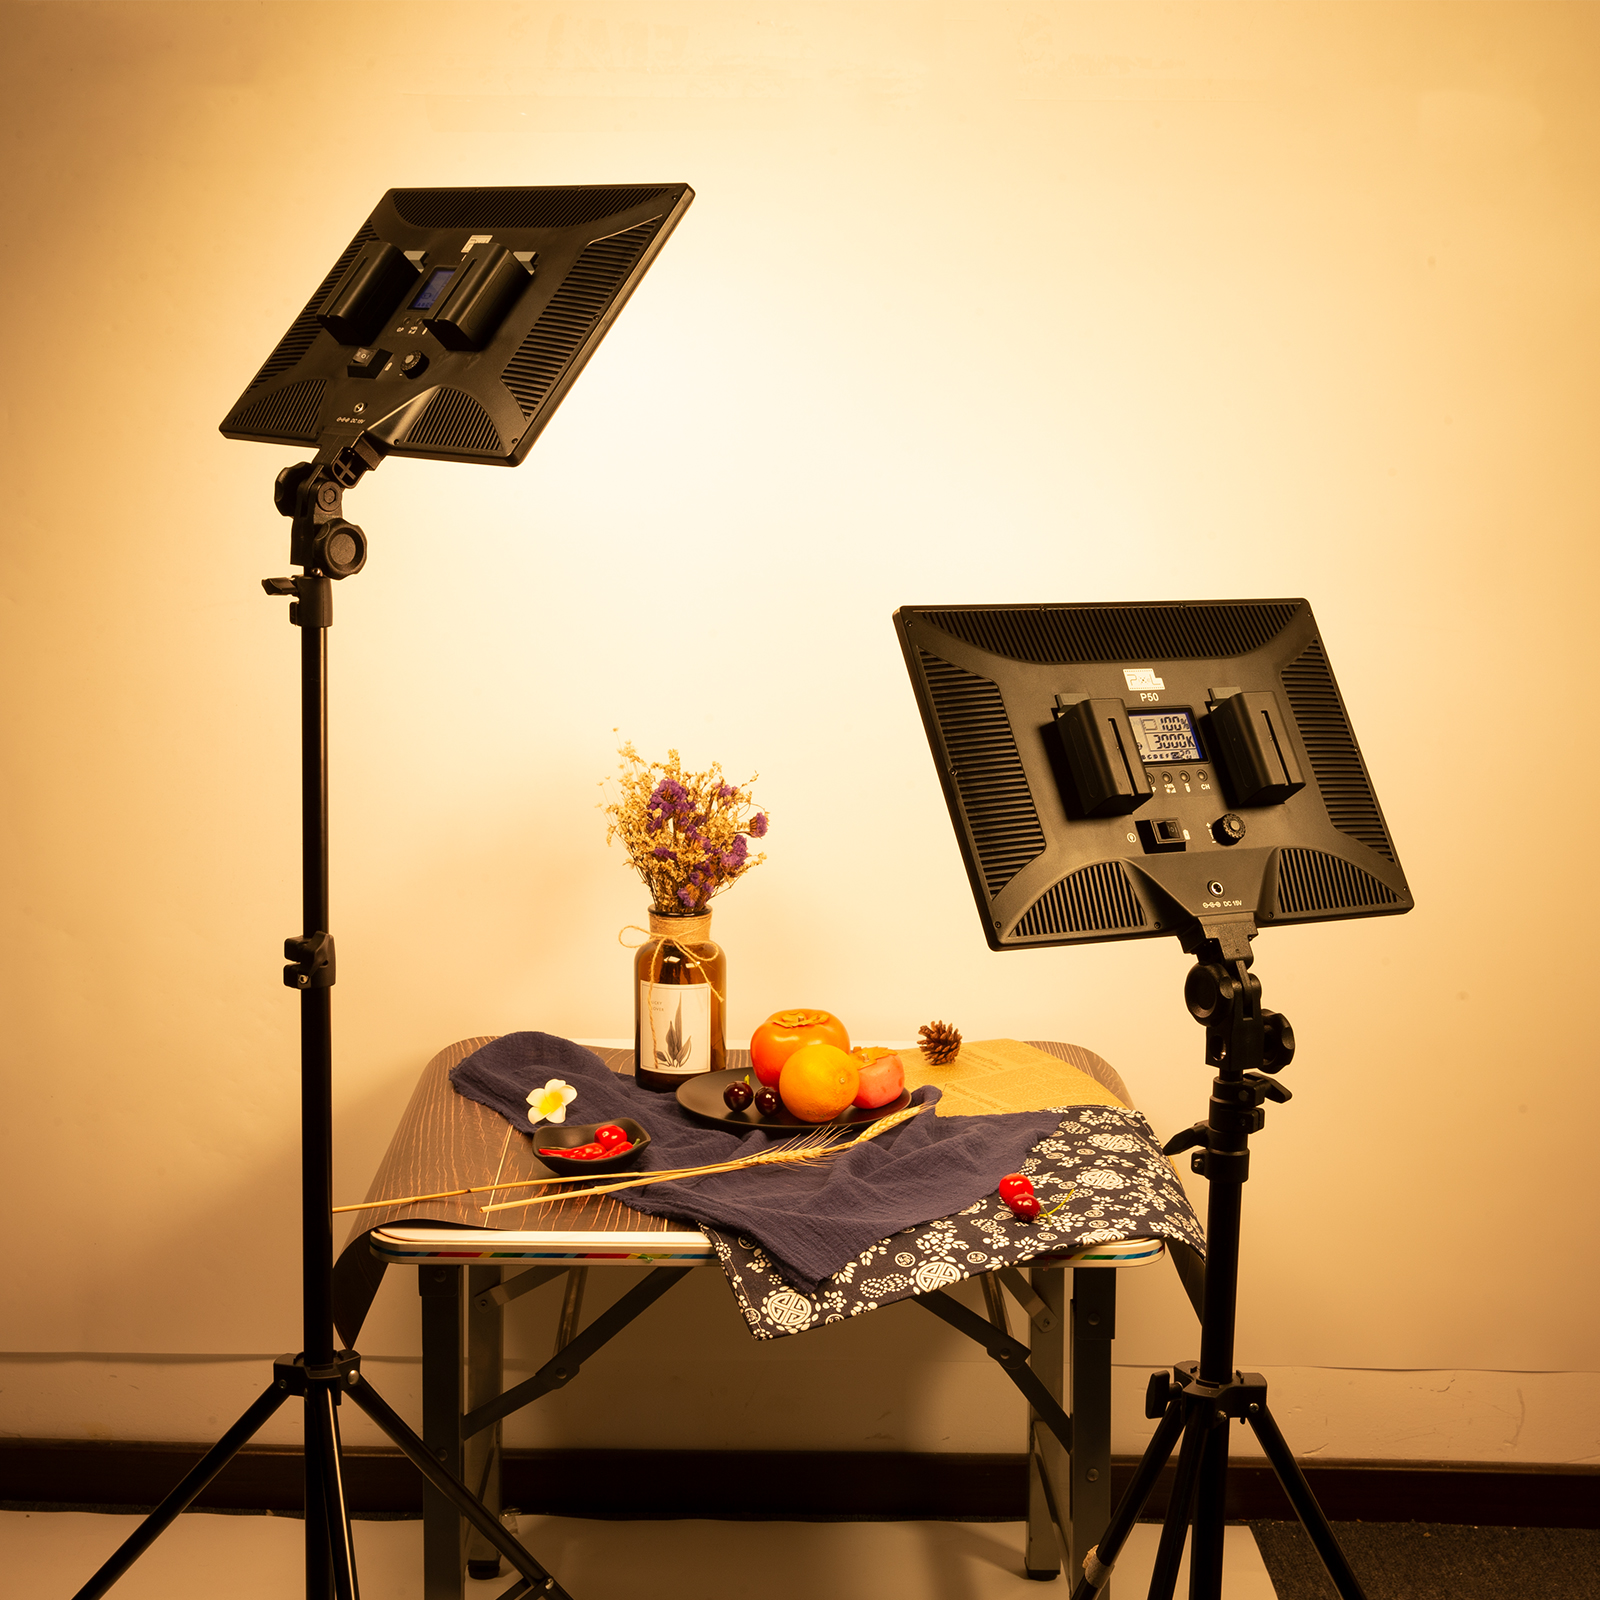 Pixel P50 Panel Light, super wide area color temperature,100 degree saturation, light and portable, intelligent special effects and flexible color palette